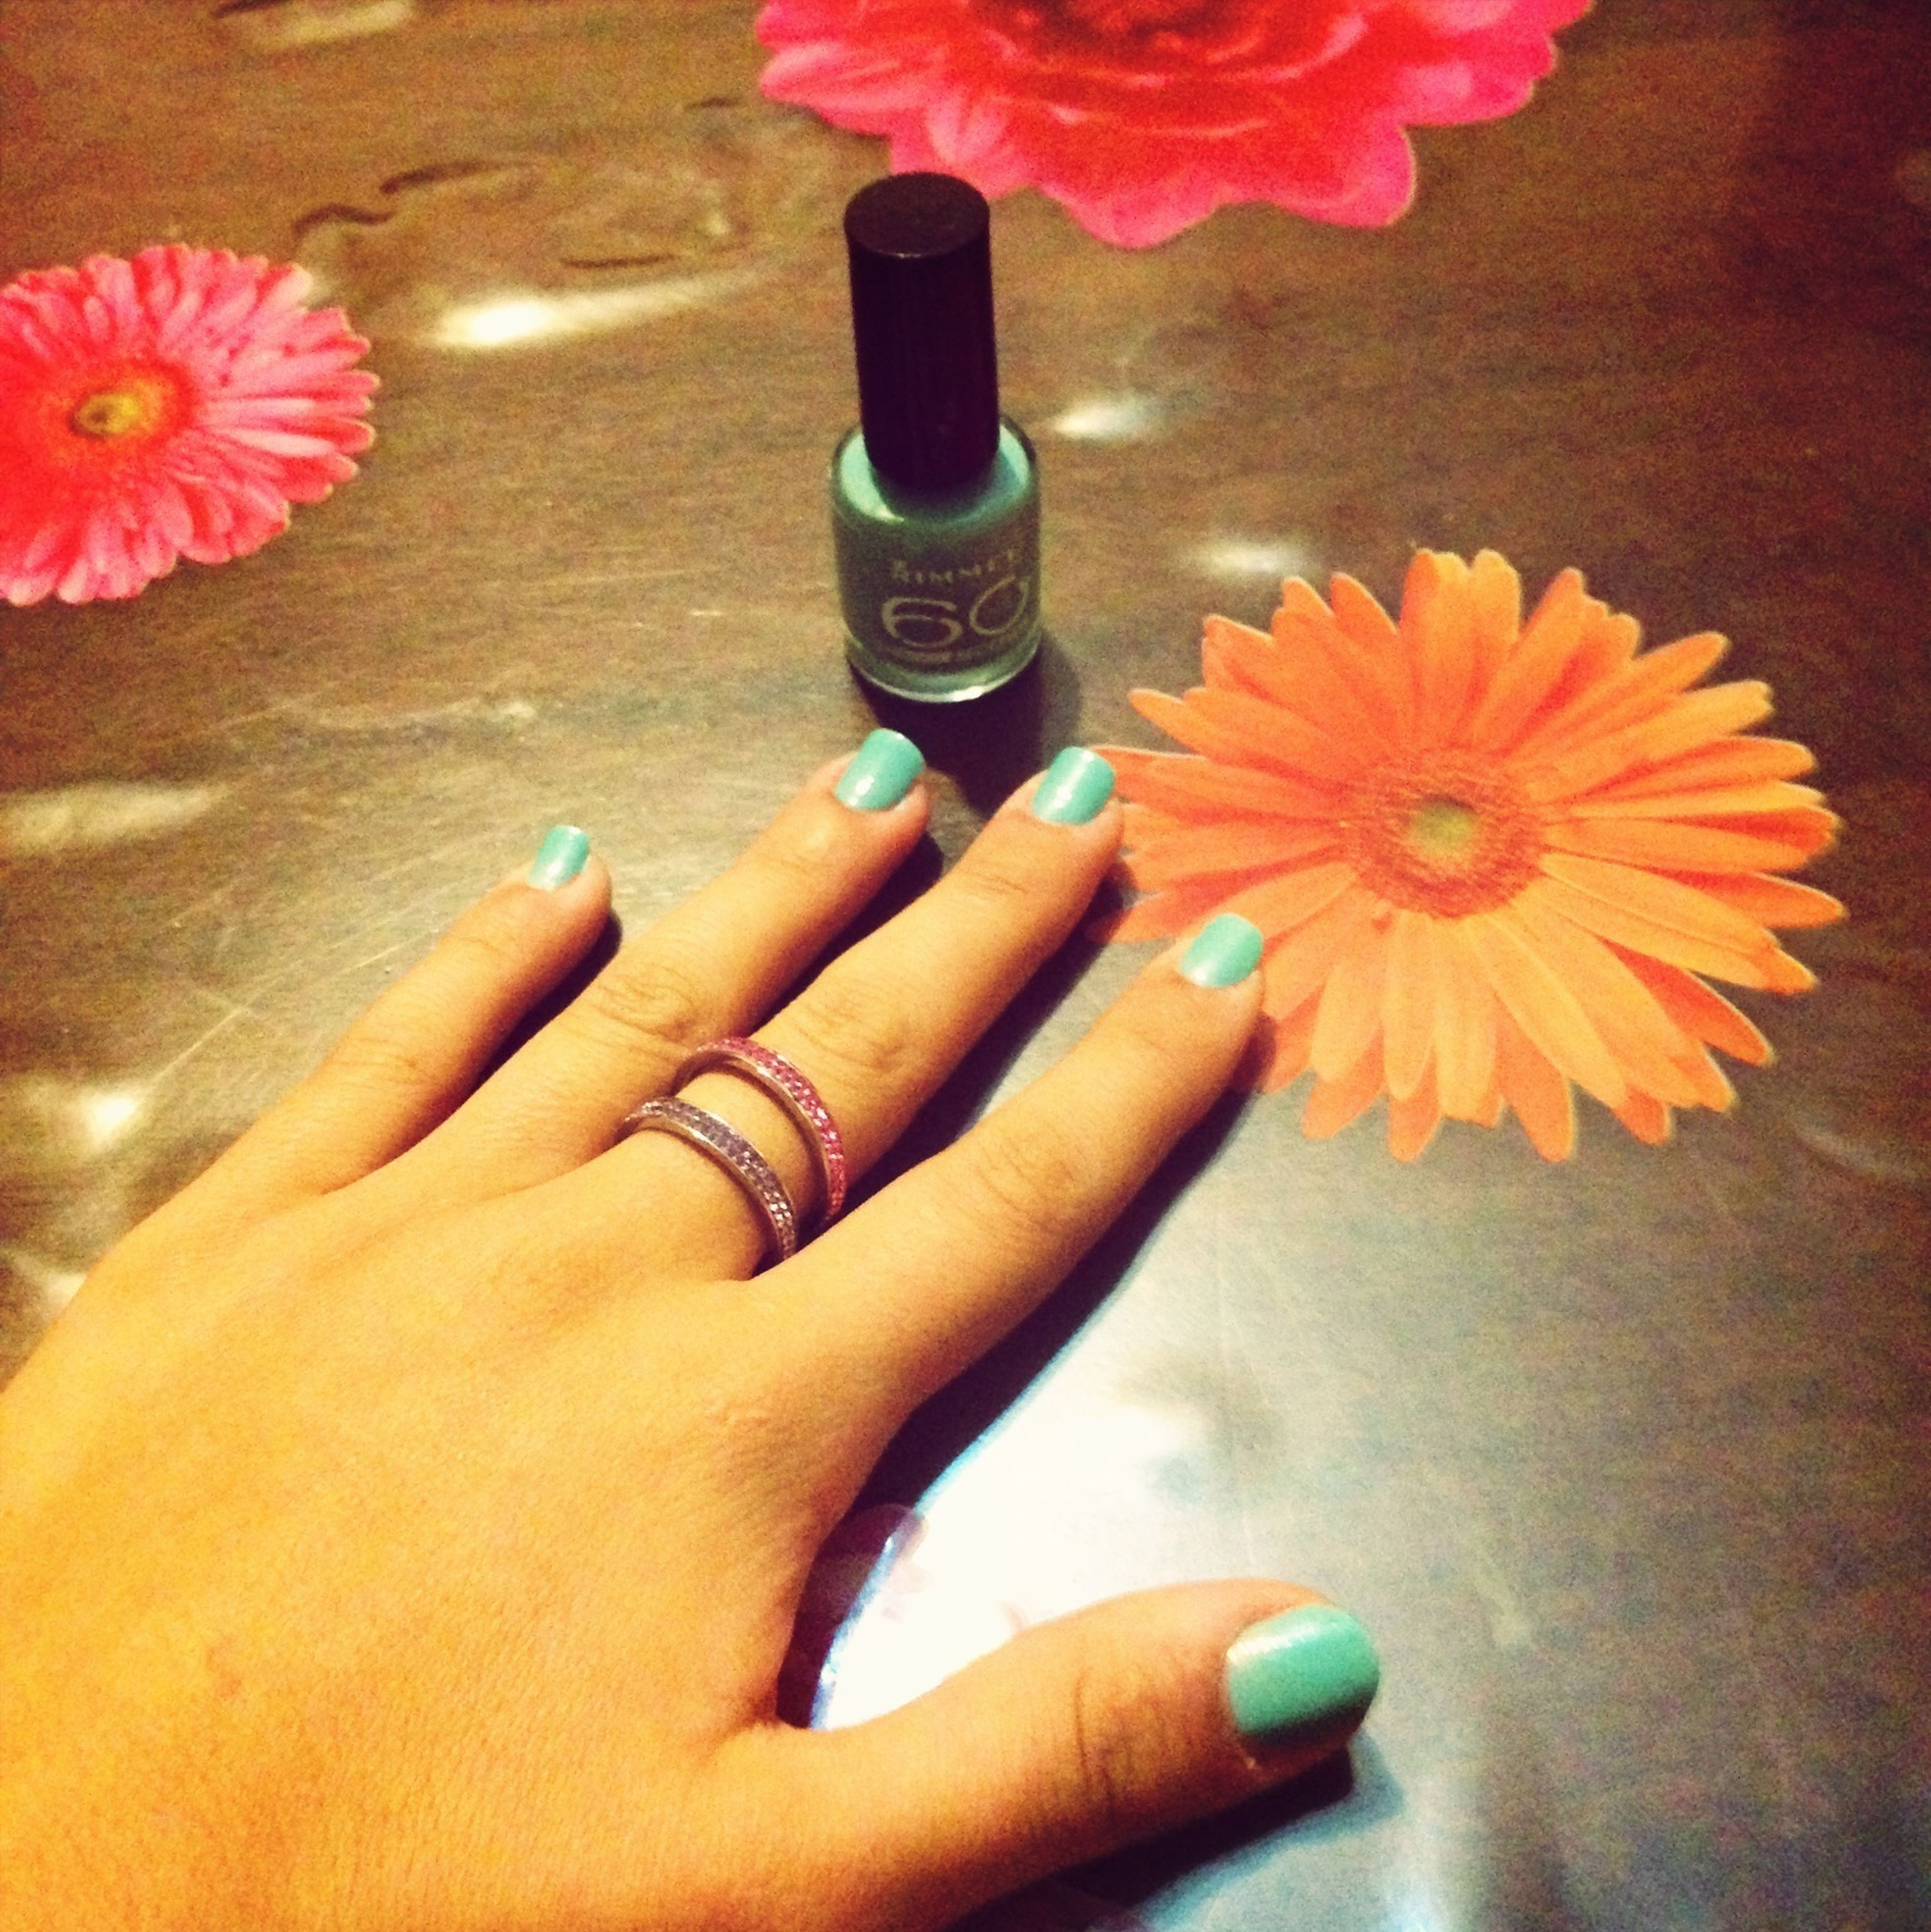 person, indoors, part of, lifestyles, flower, low section, holding, personal perspective, human finger, high angle view, cropped, leisure activity, human foot, nail polish, close-up